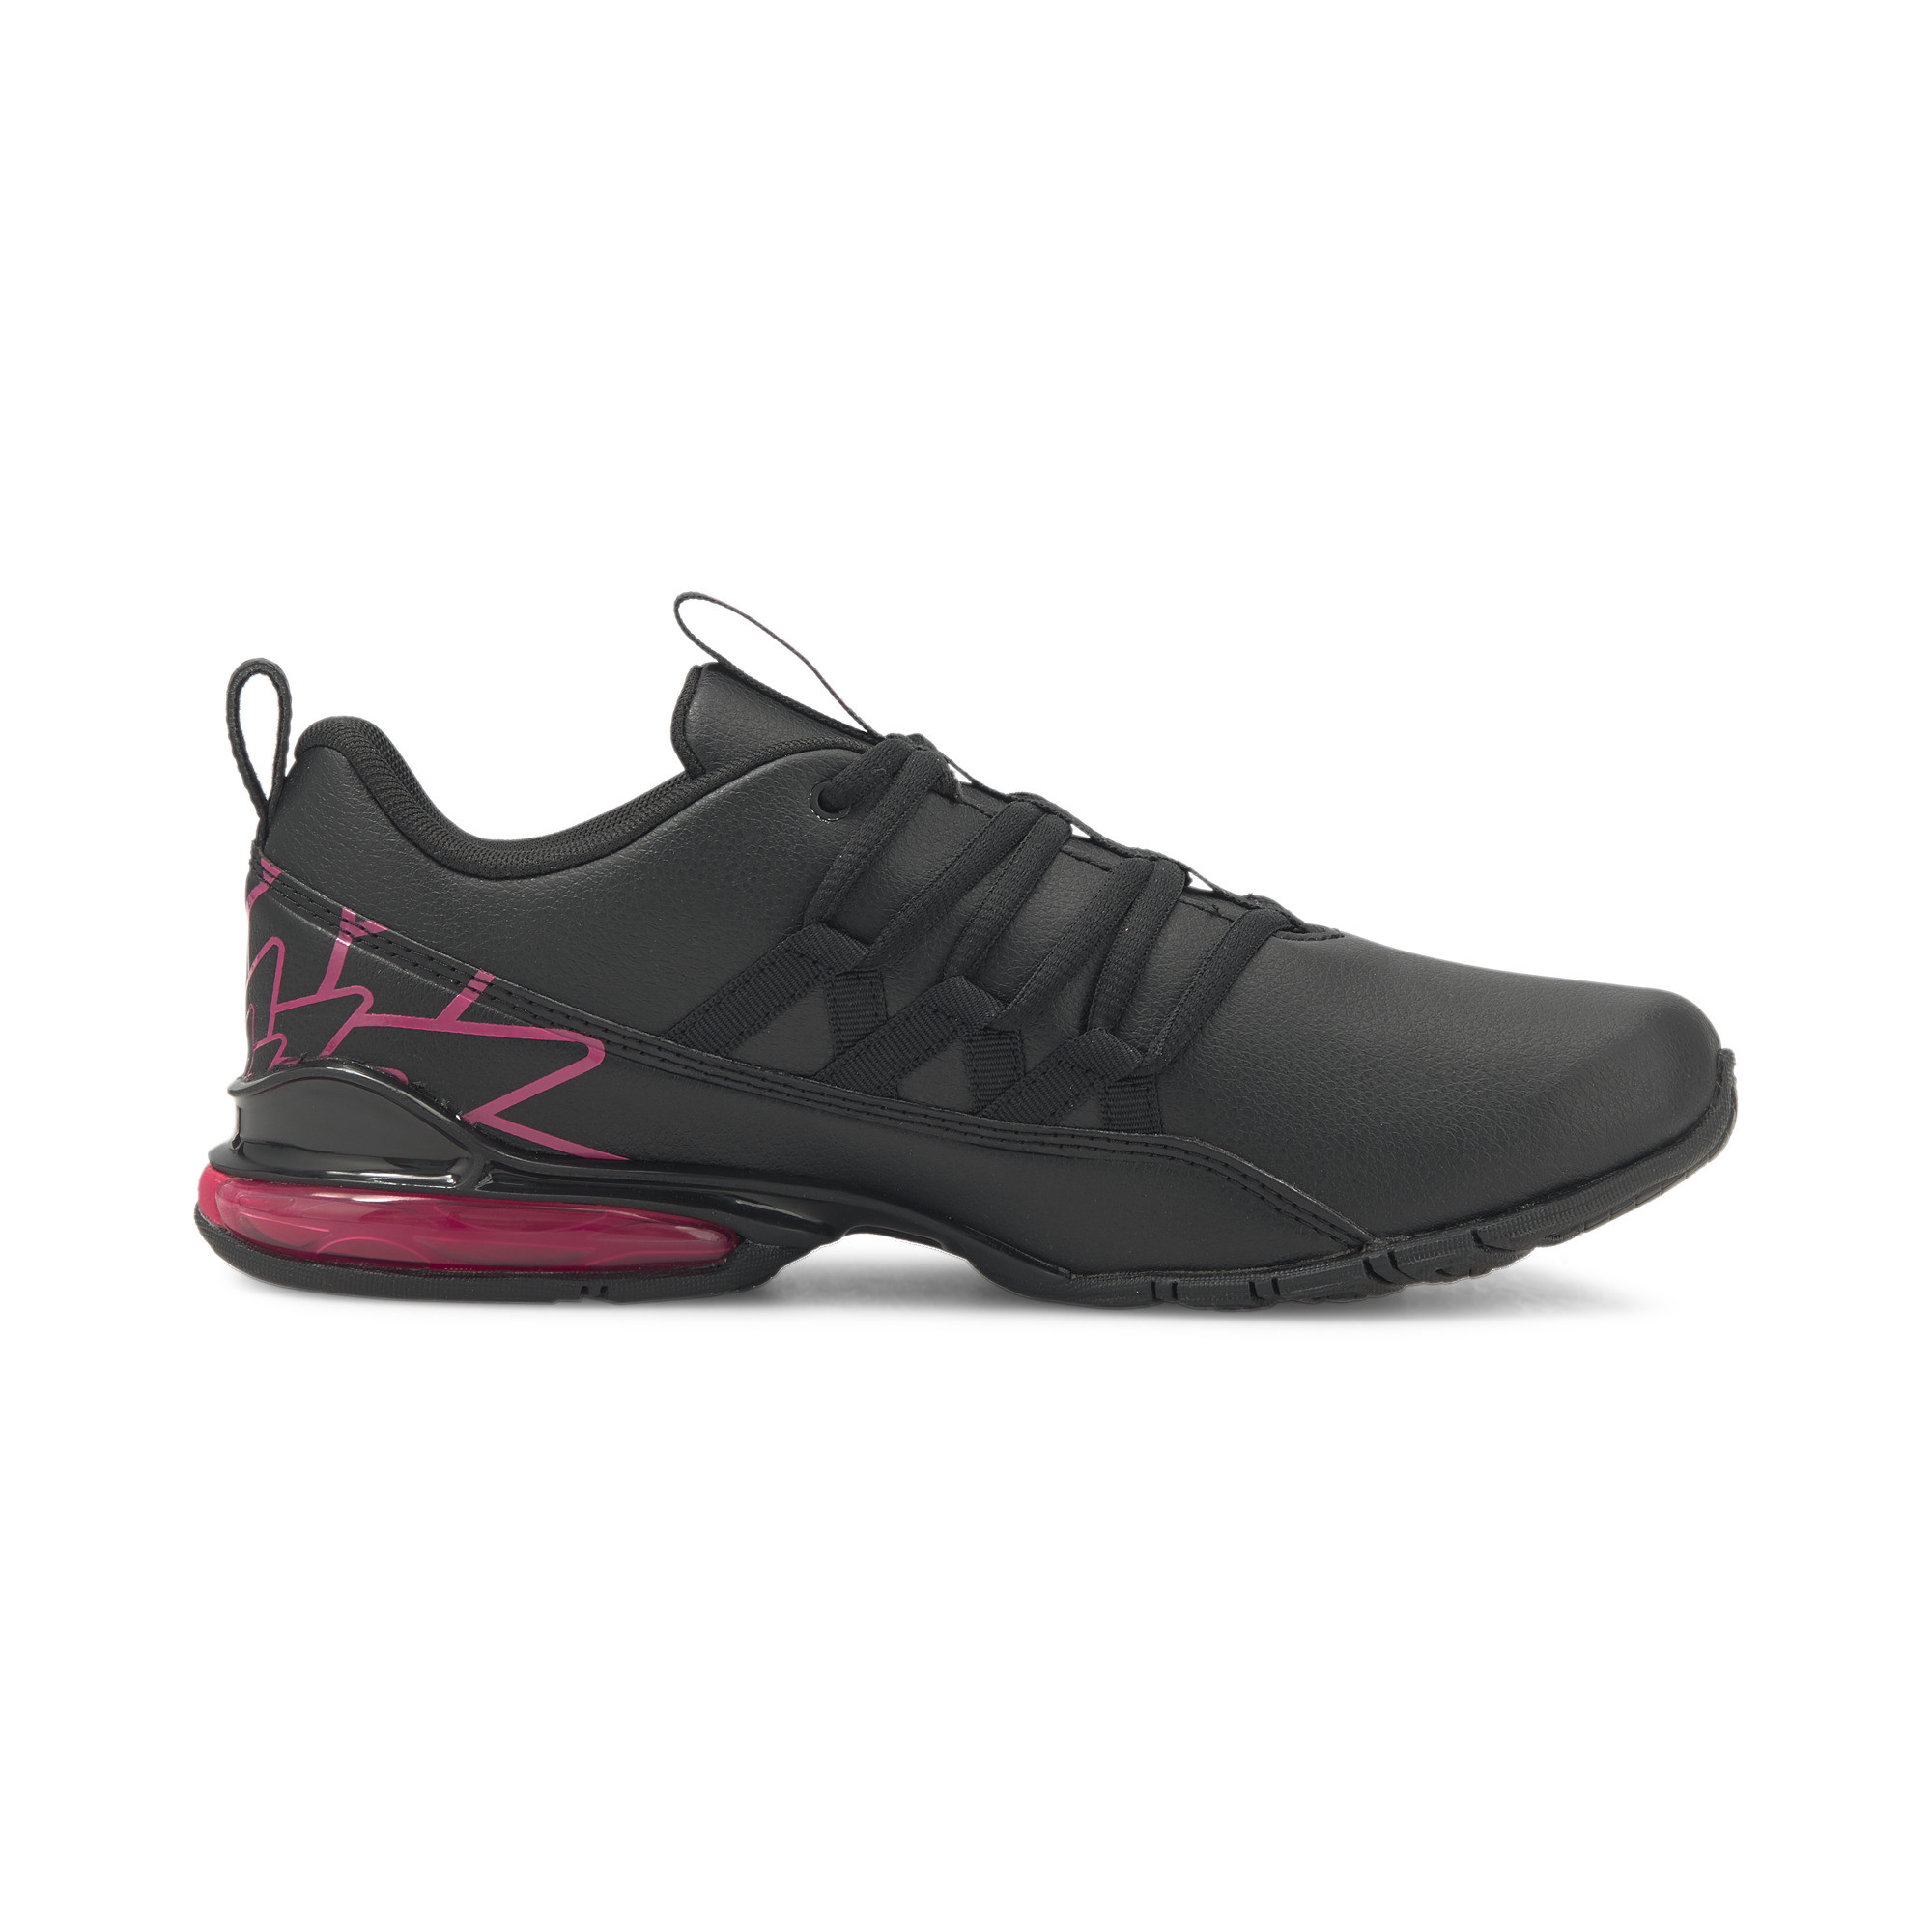 PUMA-Women-039-s-Riaze-Prowl-Graphic-Training-Shoes thumbnail 6